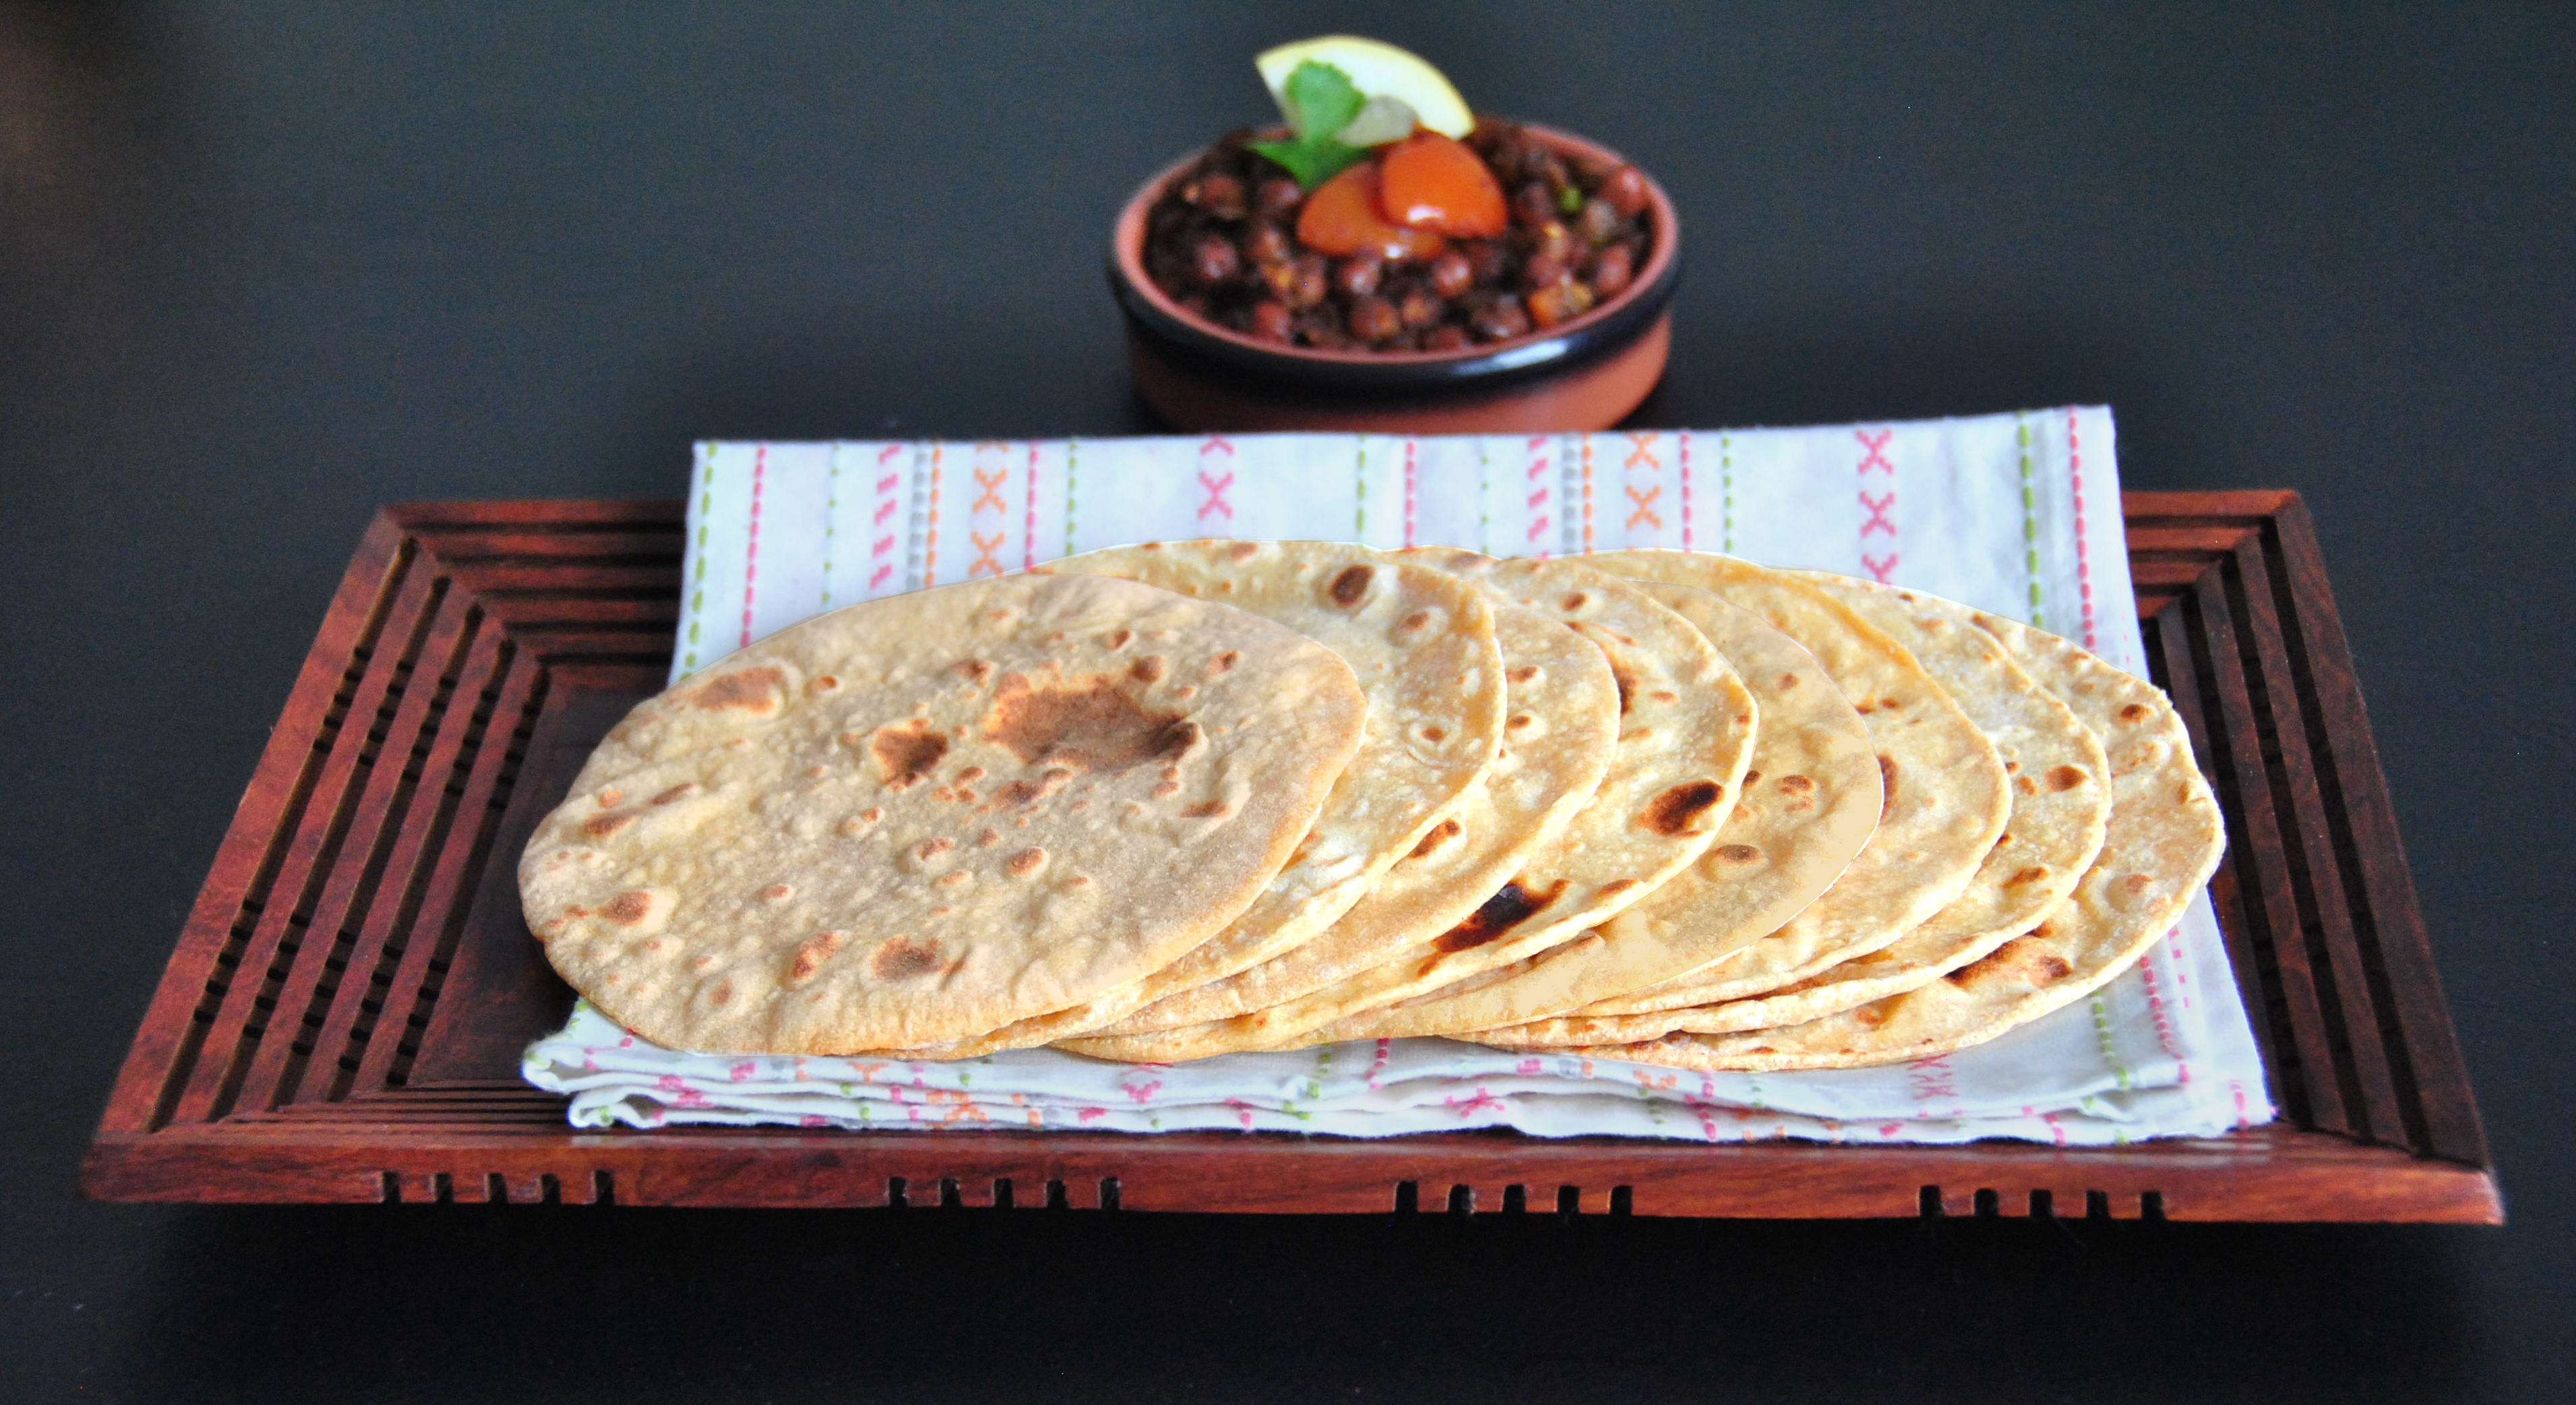 ... , 2012 at 3822 × 2084 in Chapati (Whole Wheat Flat Bread) . Next